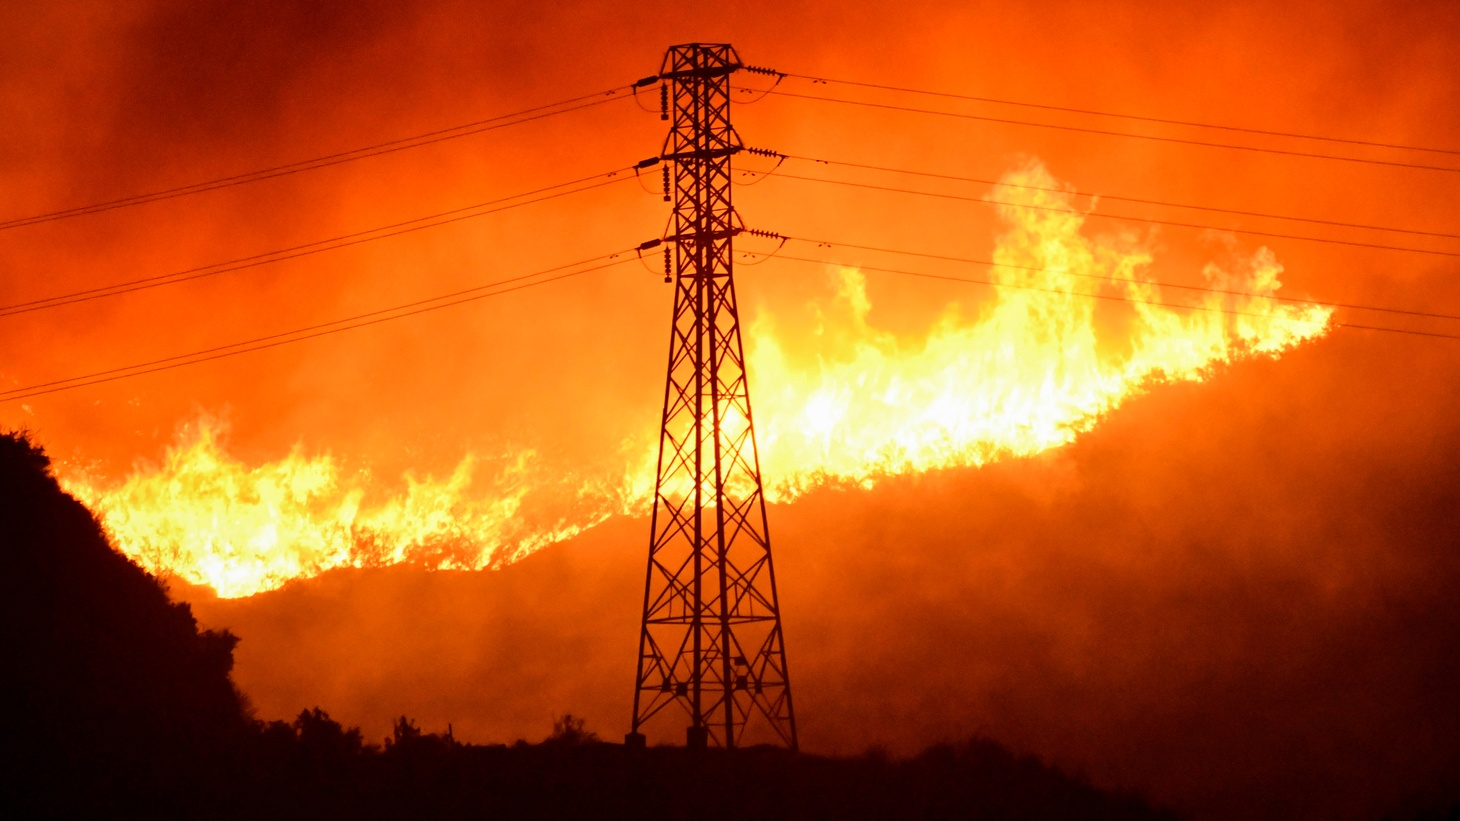 A wind-driven wildfire burns near power line tower in Sylmar, California, U.S., October 10, 2019.